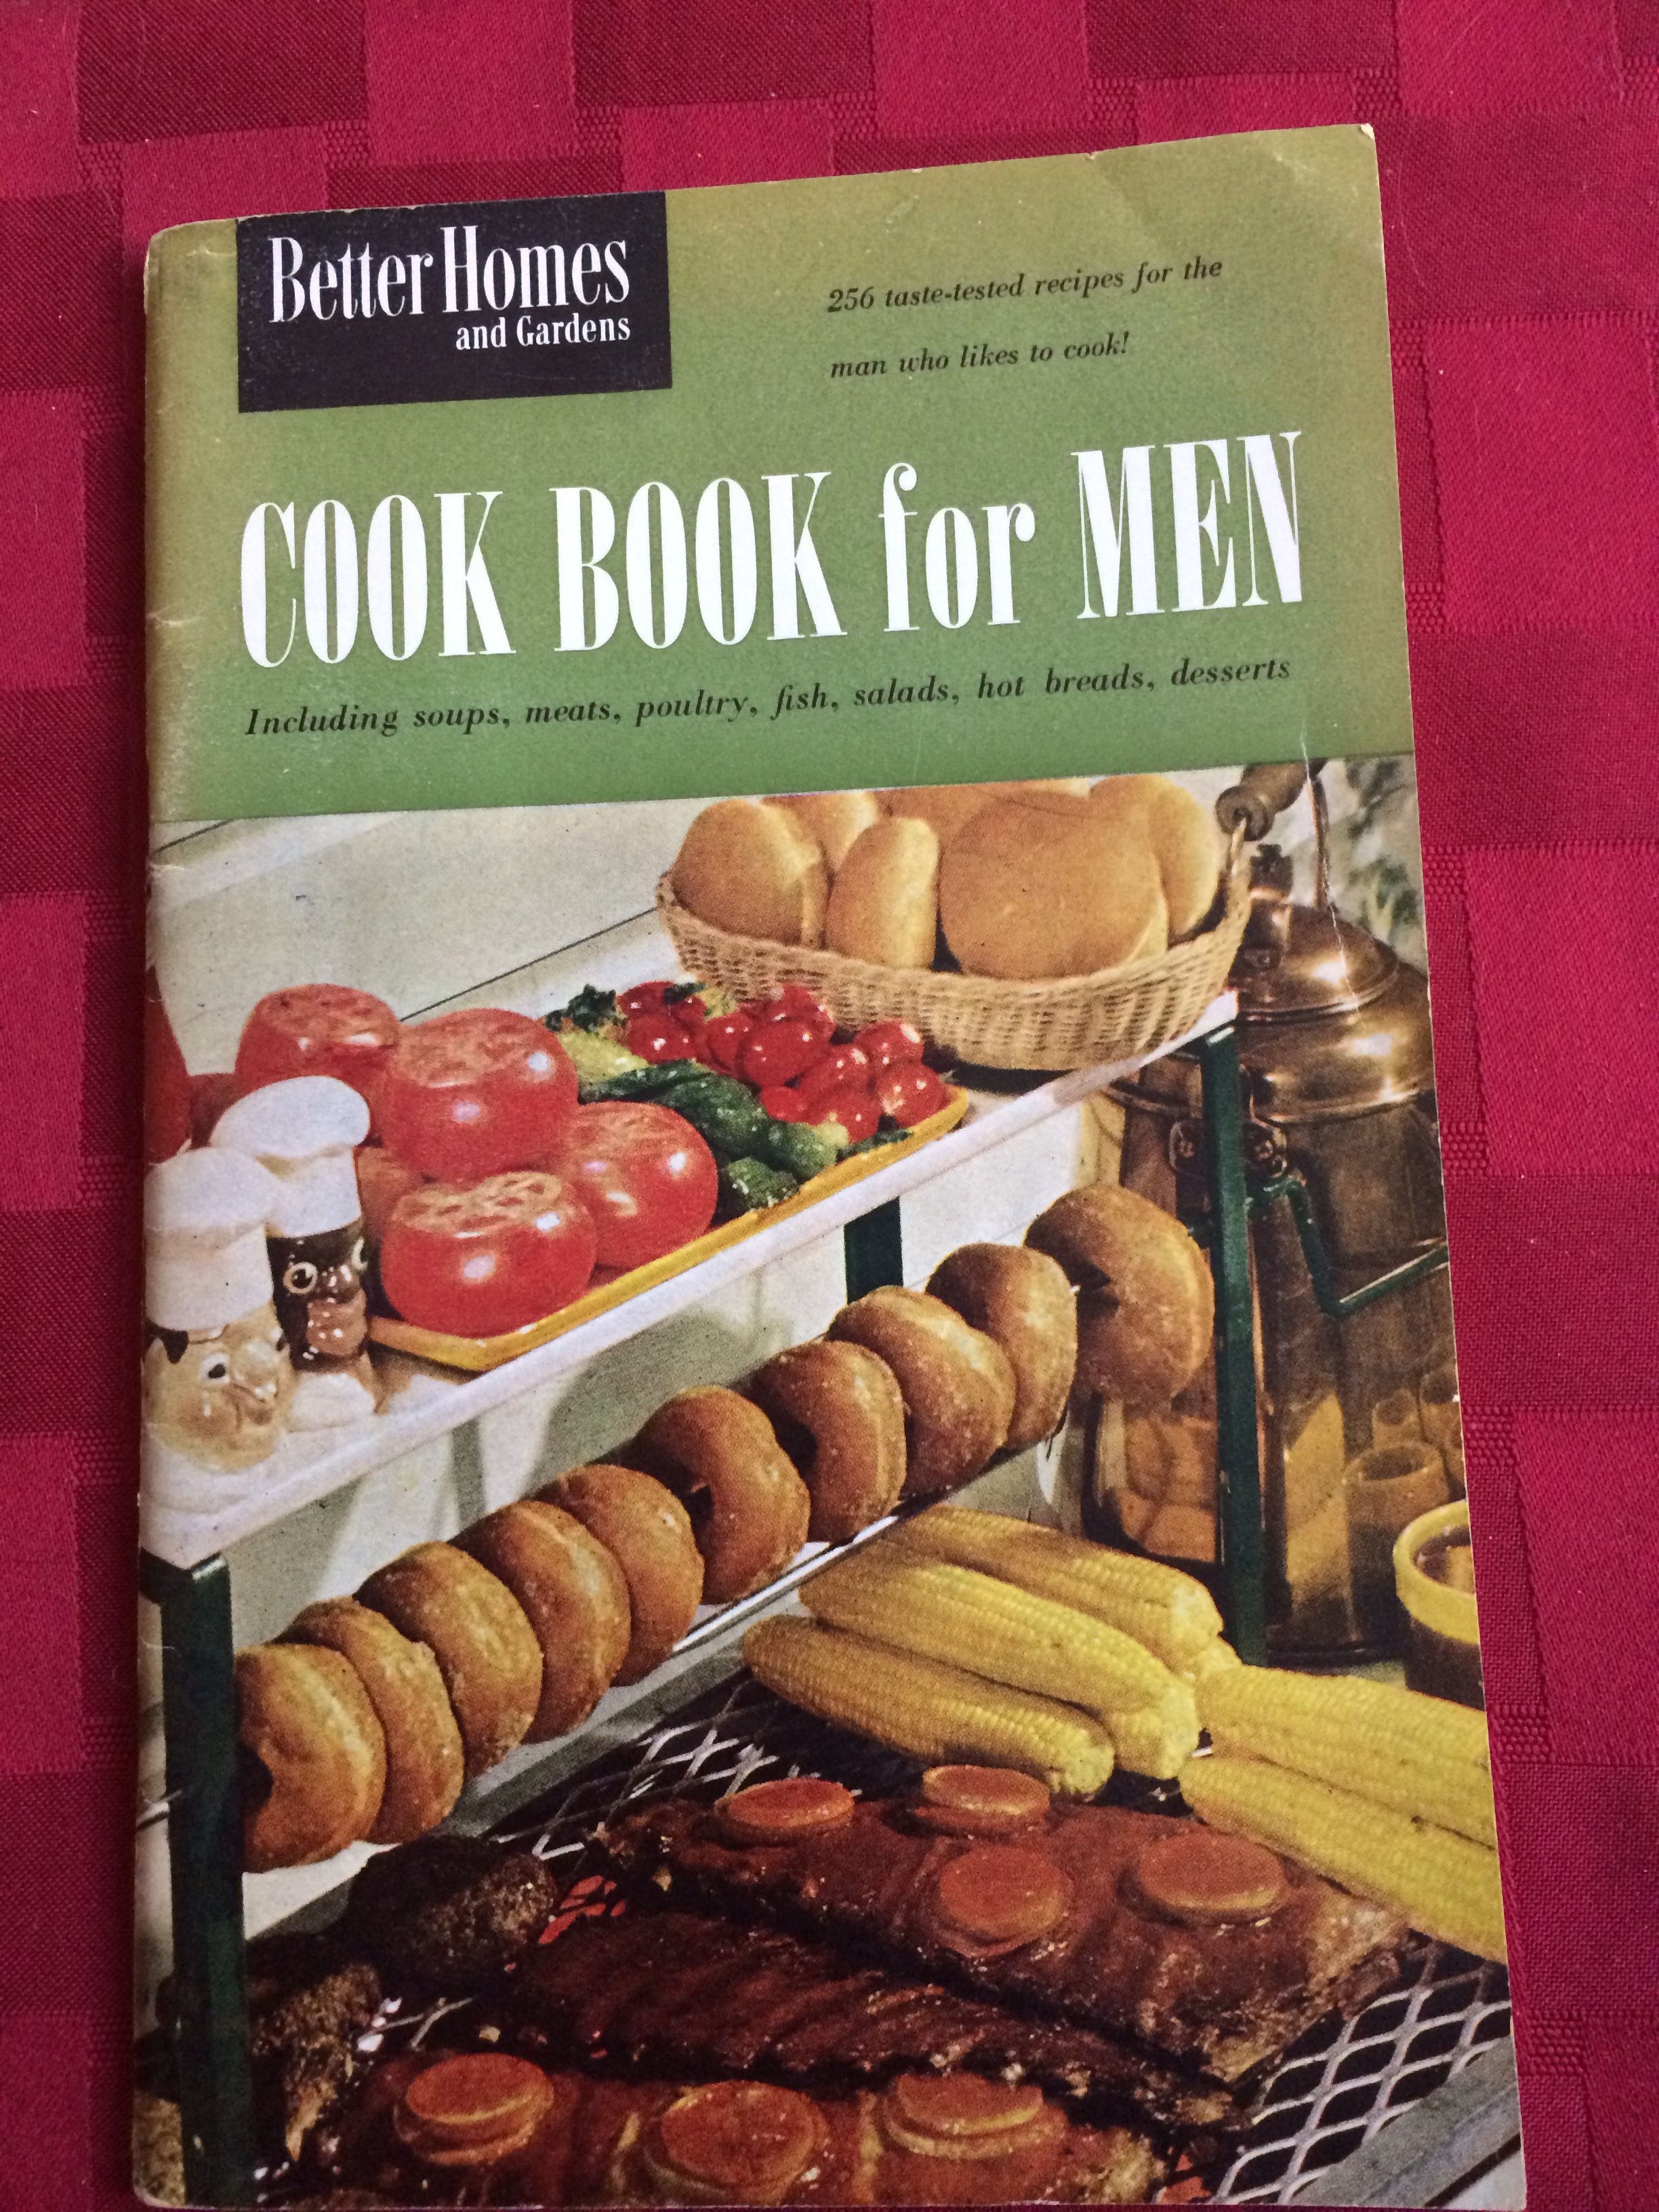 Better homes gardens cook book for men features charcoal charlies food forumfinder Image collections